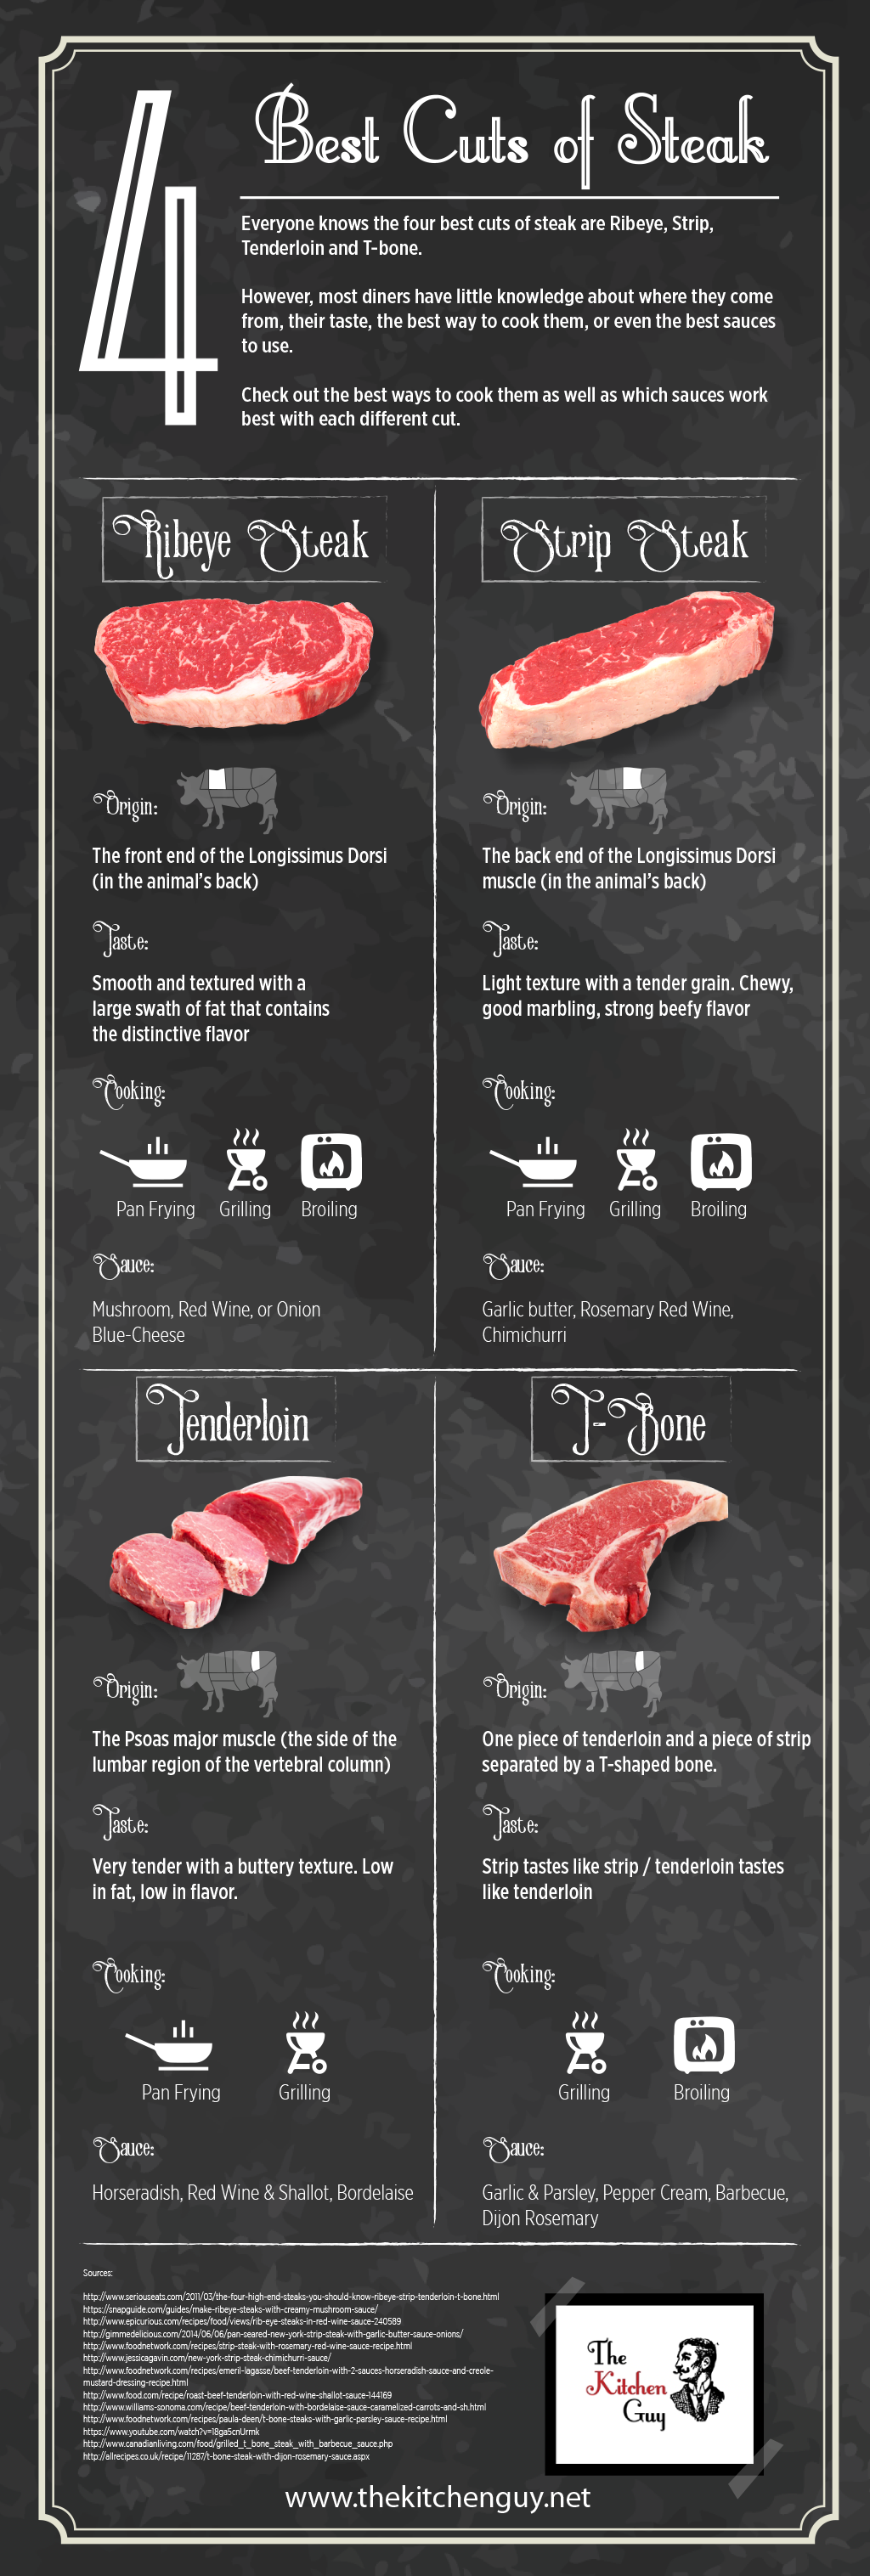 4 Best Cuts of Steak by The Kitchen Guy